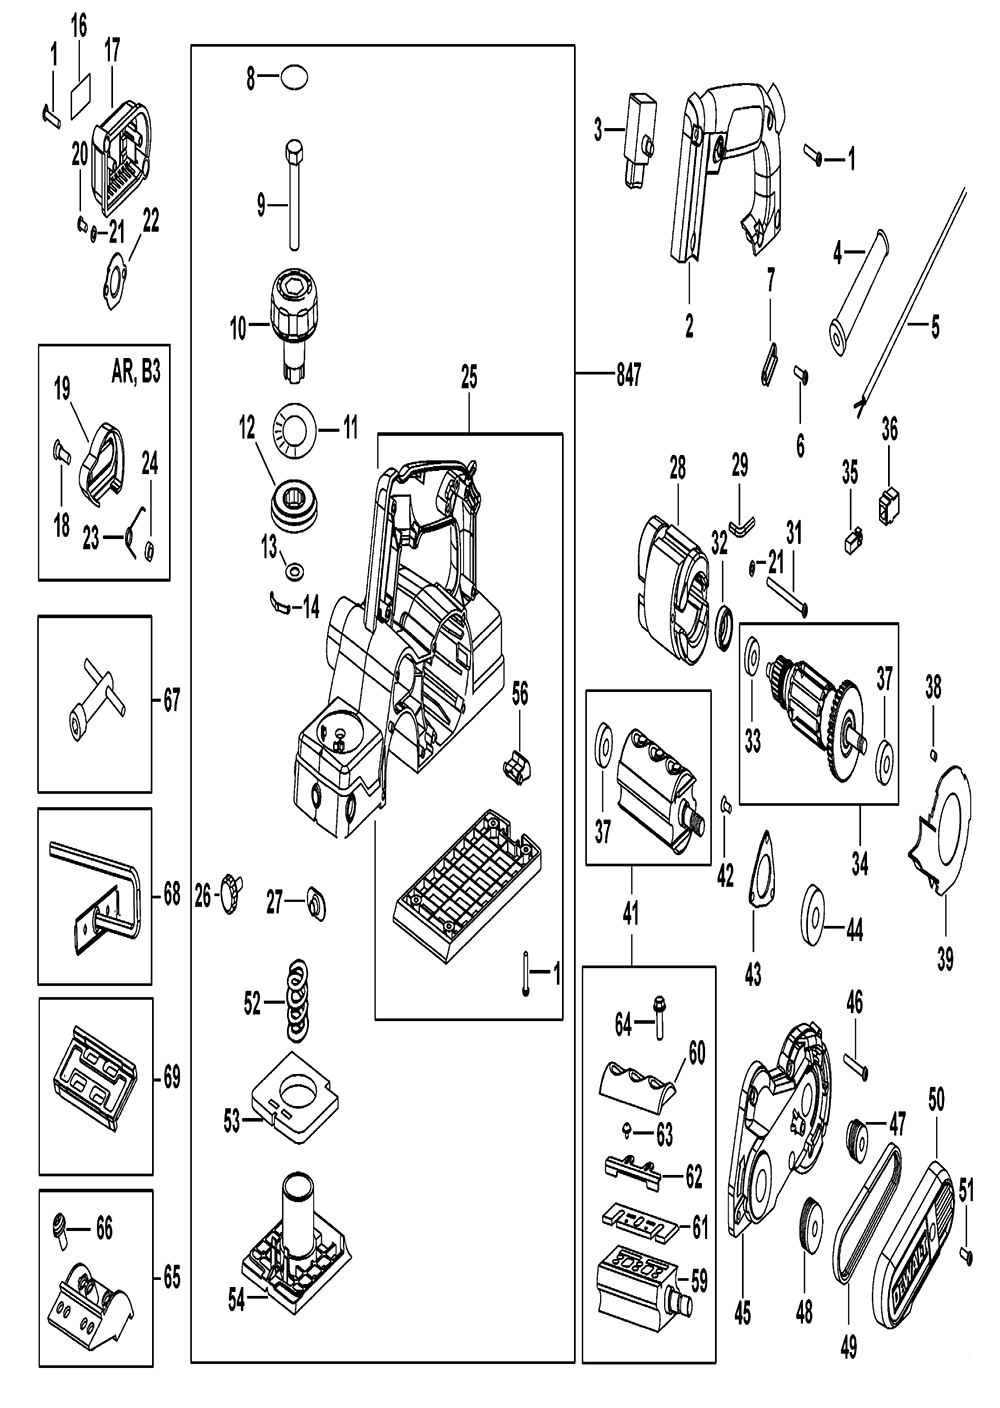 D26676 Planer Parts Jet Wiring Diagram